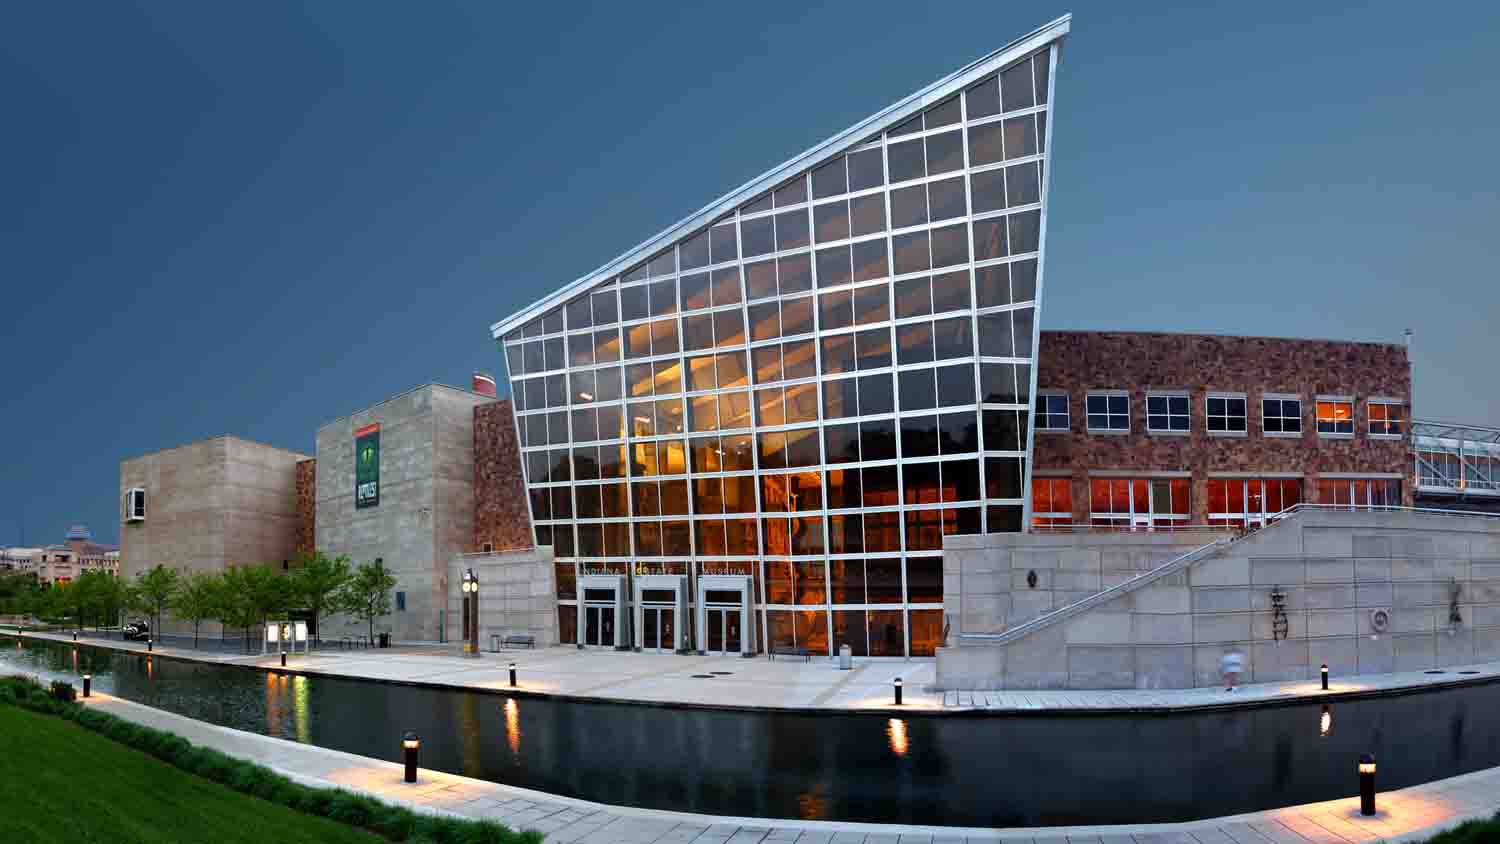 Nearly 700,000 people visit the Indiana State Museum each year.